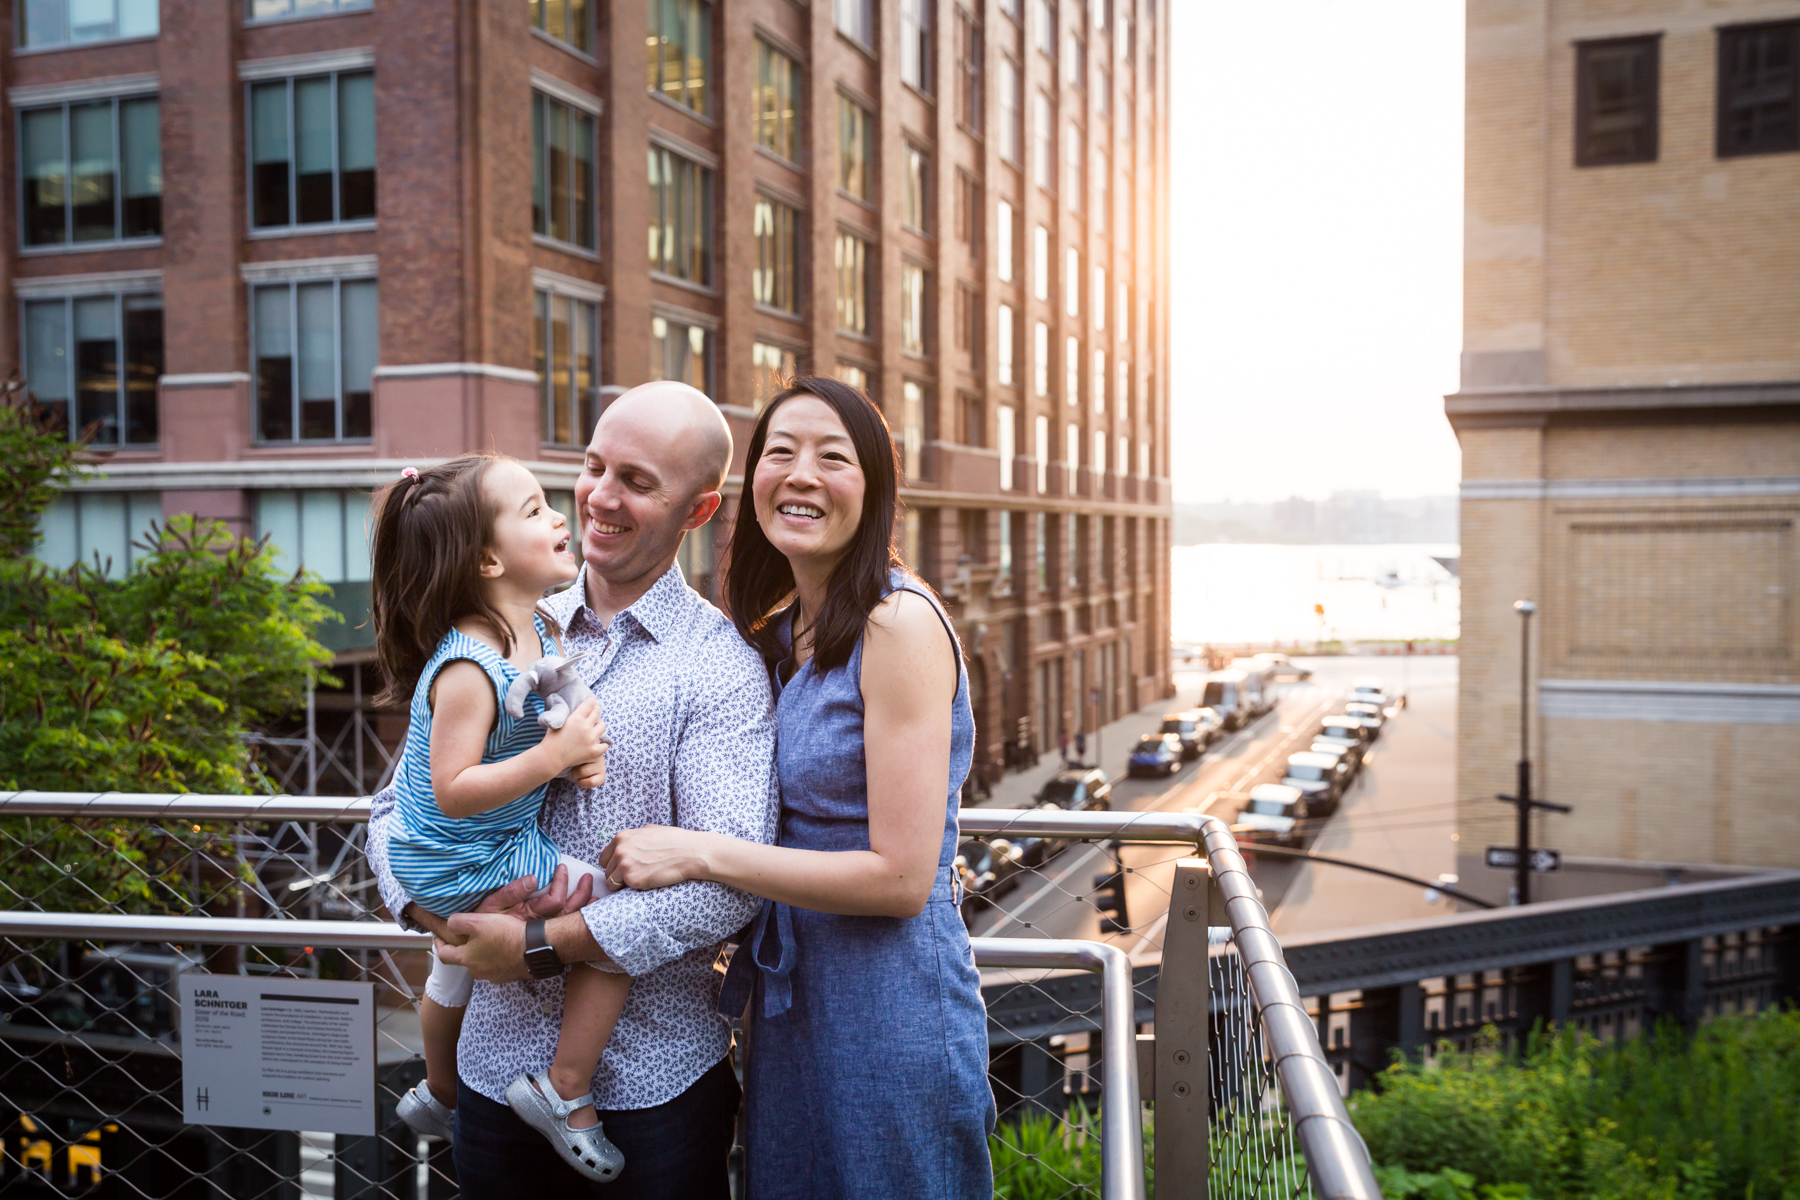 Family portrait on the High Line for an article on High Line family portrait tips